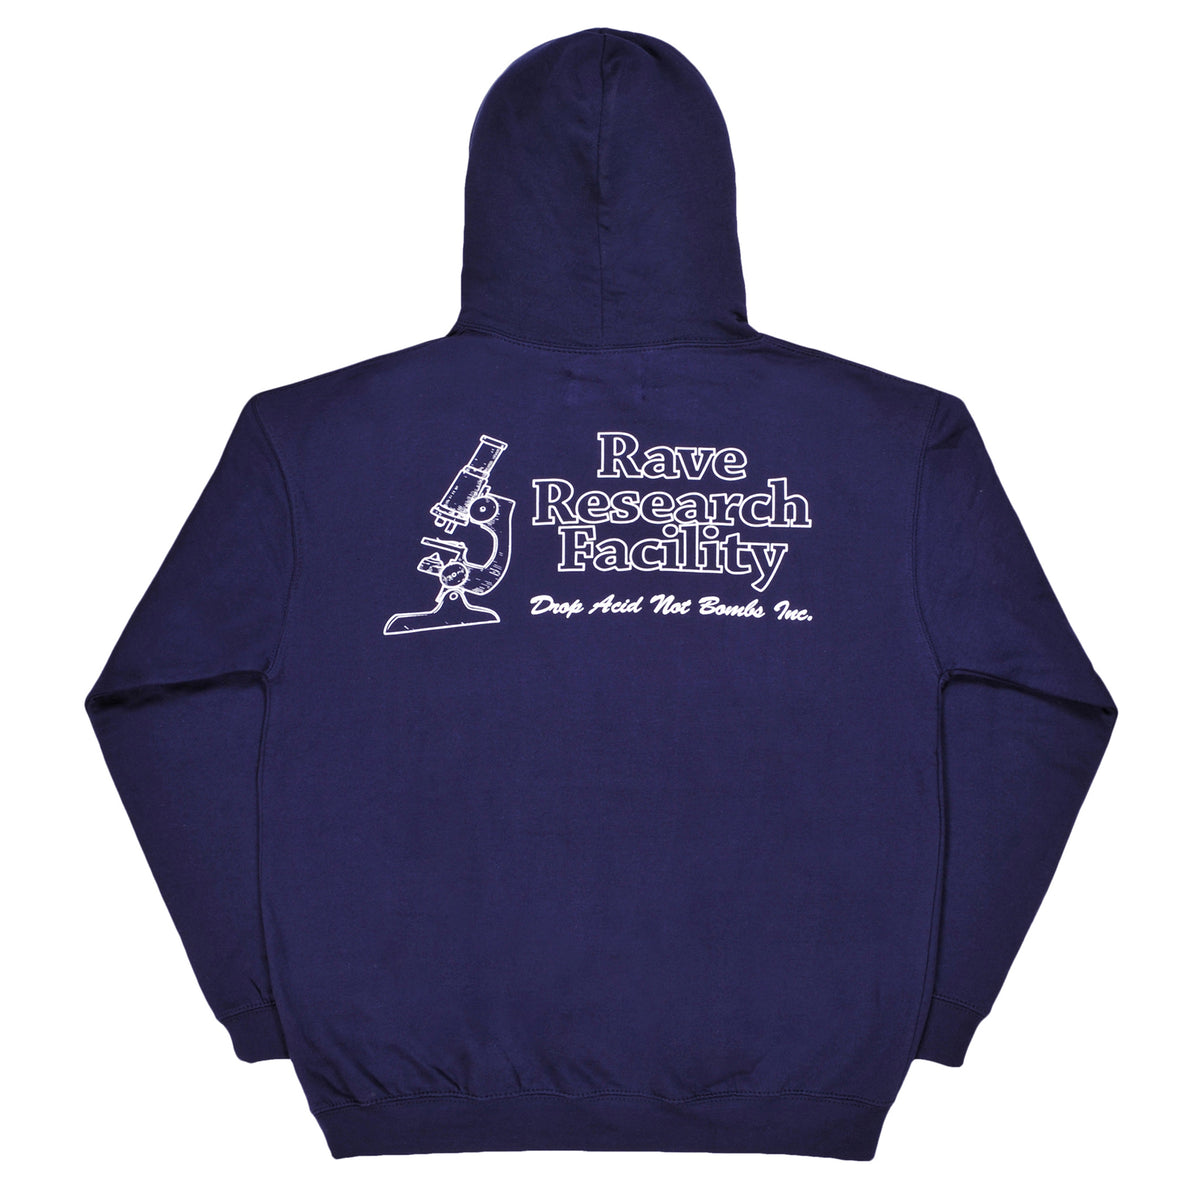 RAVE RESEARCH FACILITY navy hoodie - RAVE skateboards